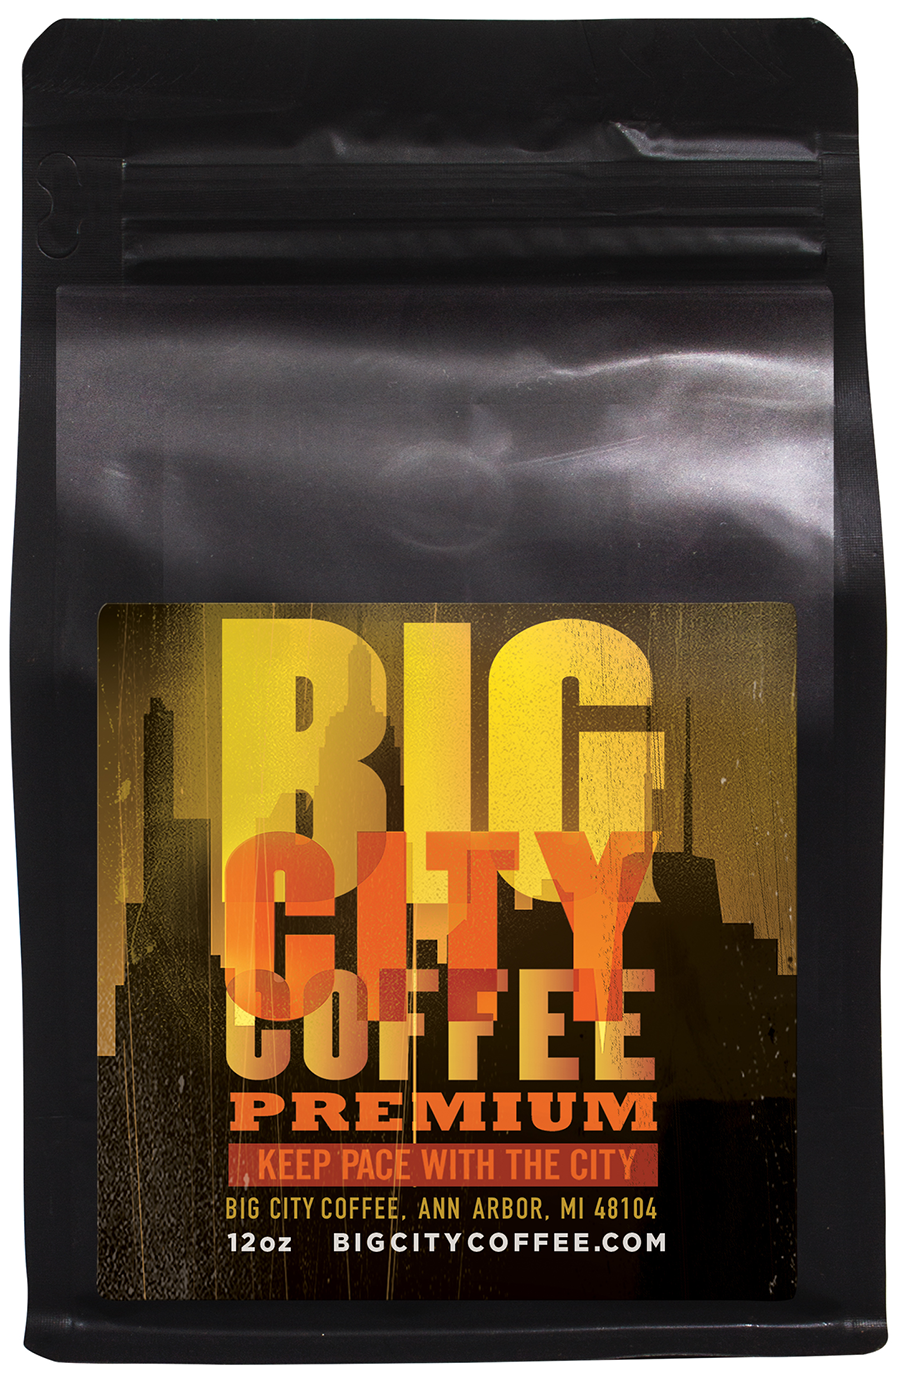 BCC-BIG-CITY-NEW-900x1380